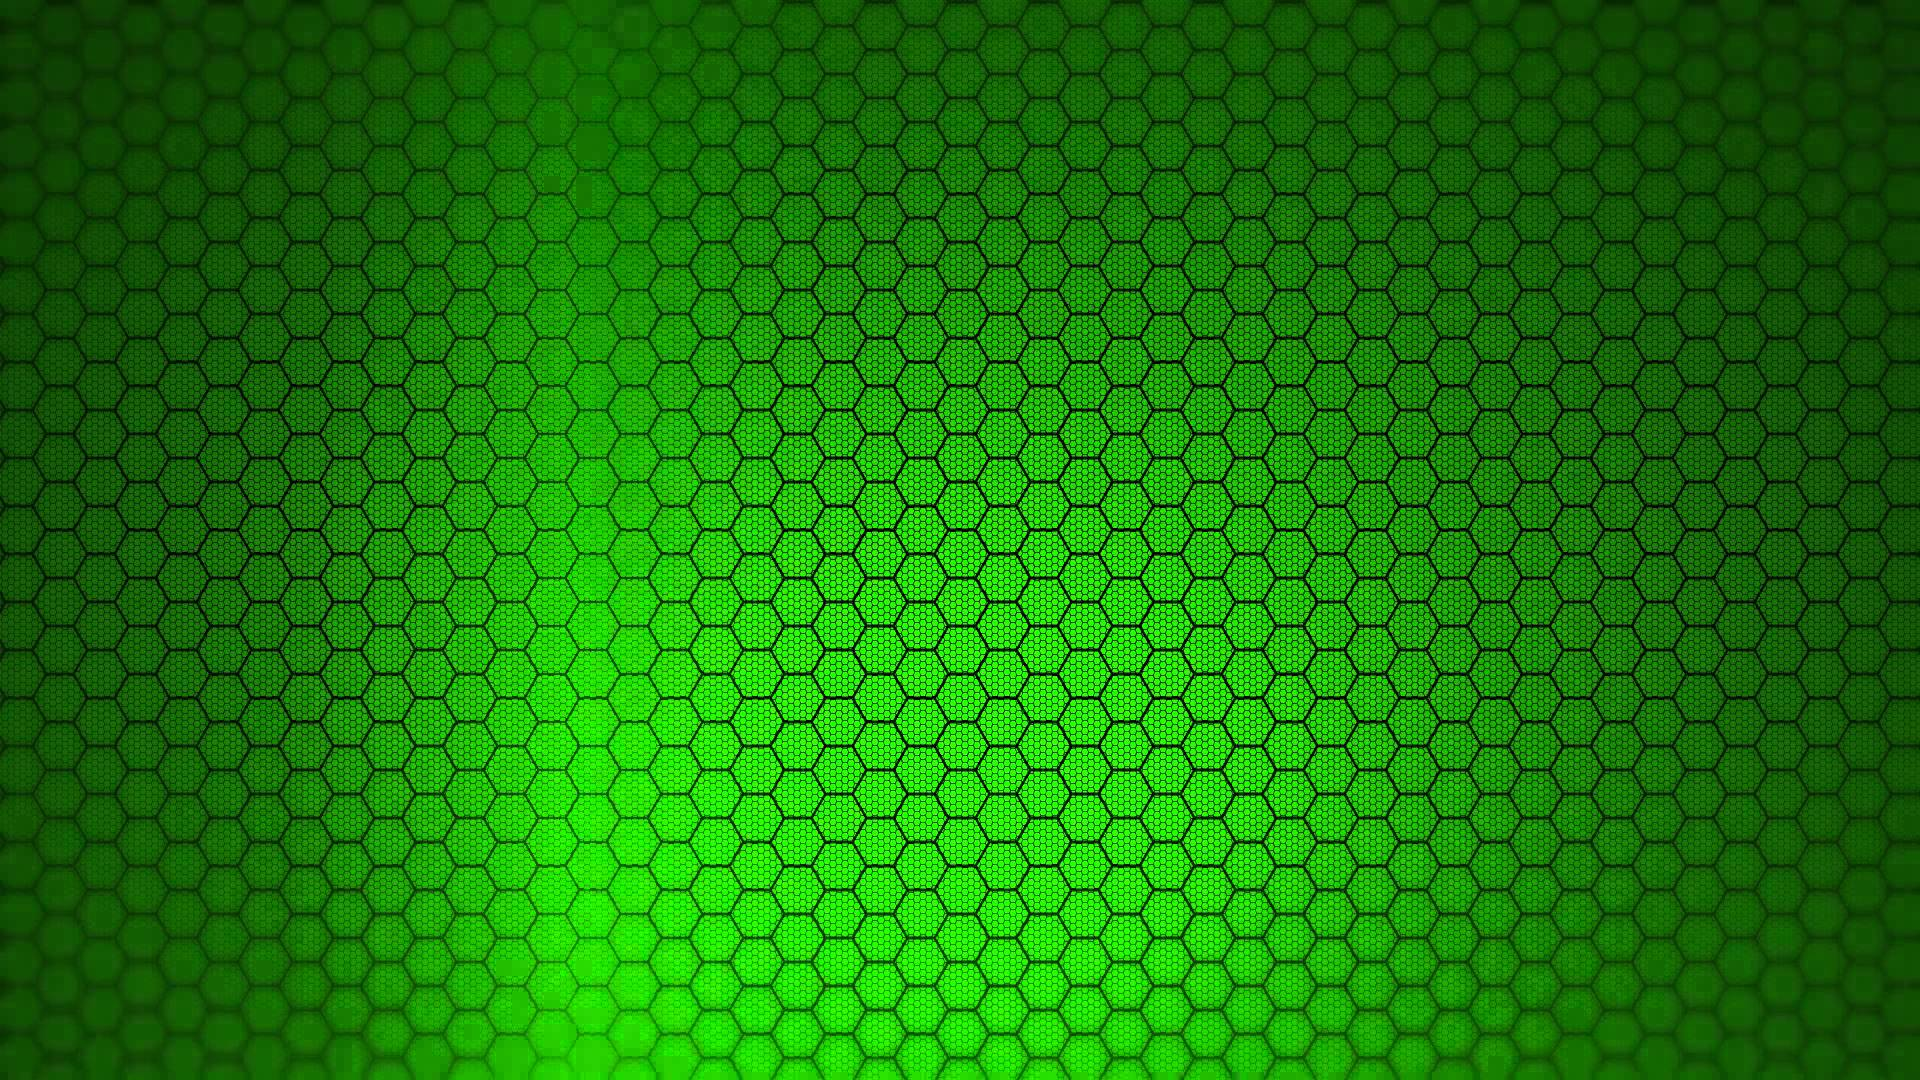 Hexagon Background - Green Screen Animation